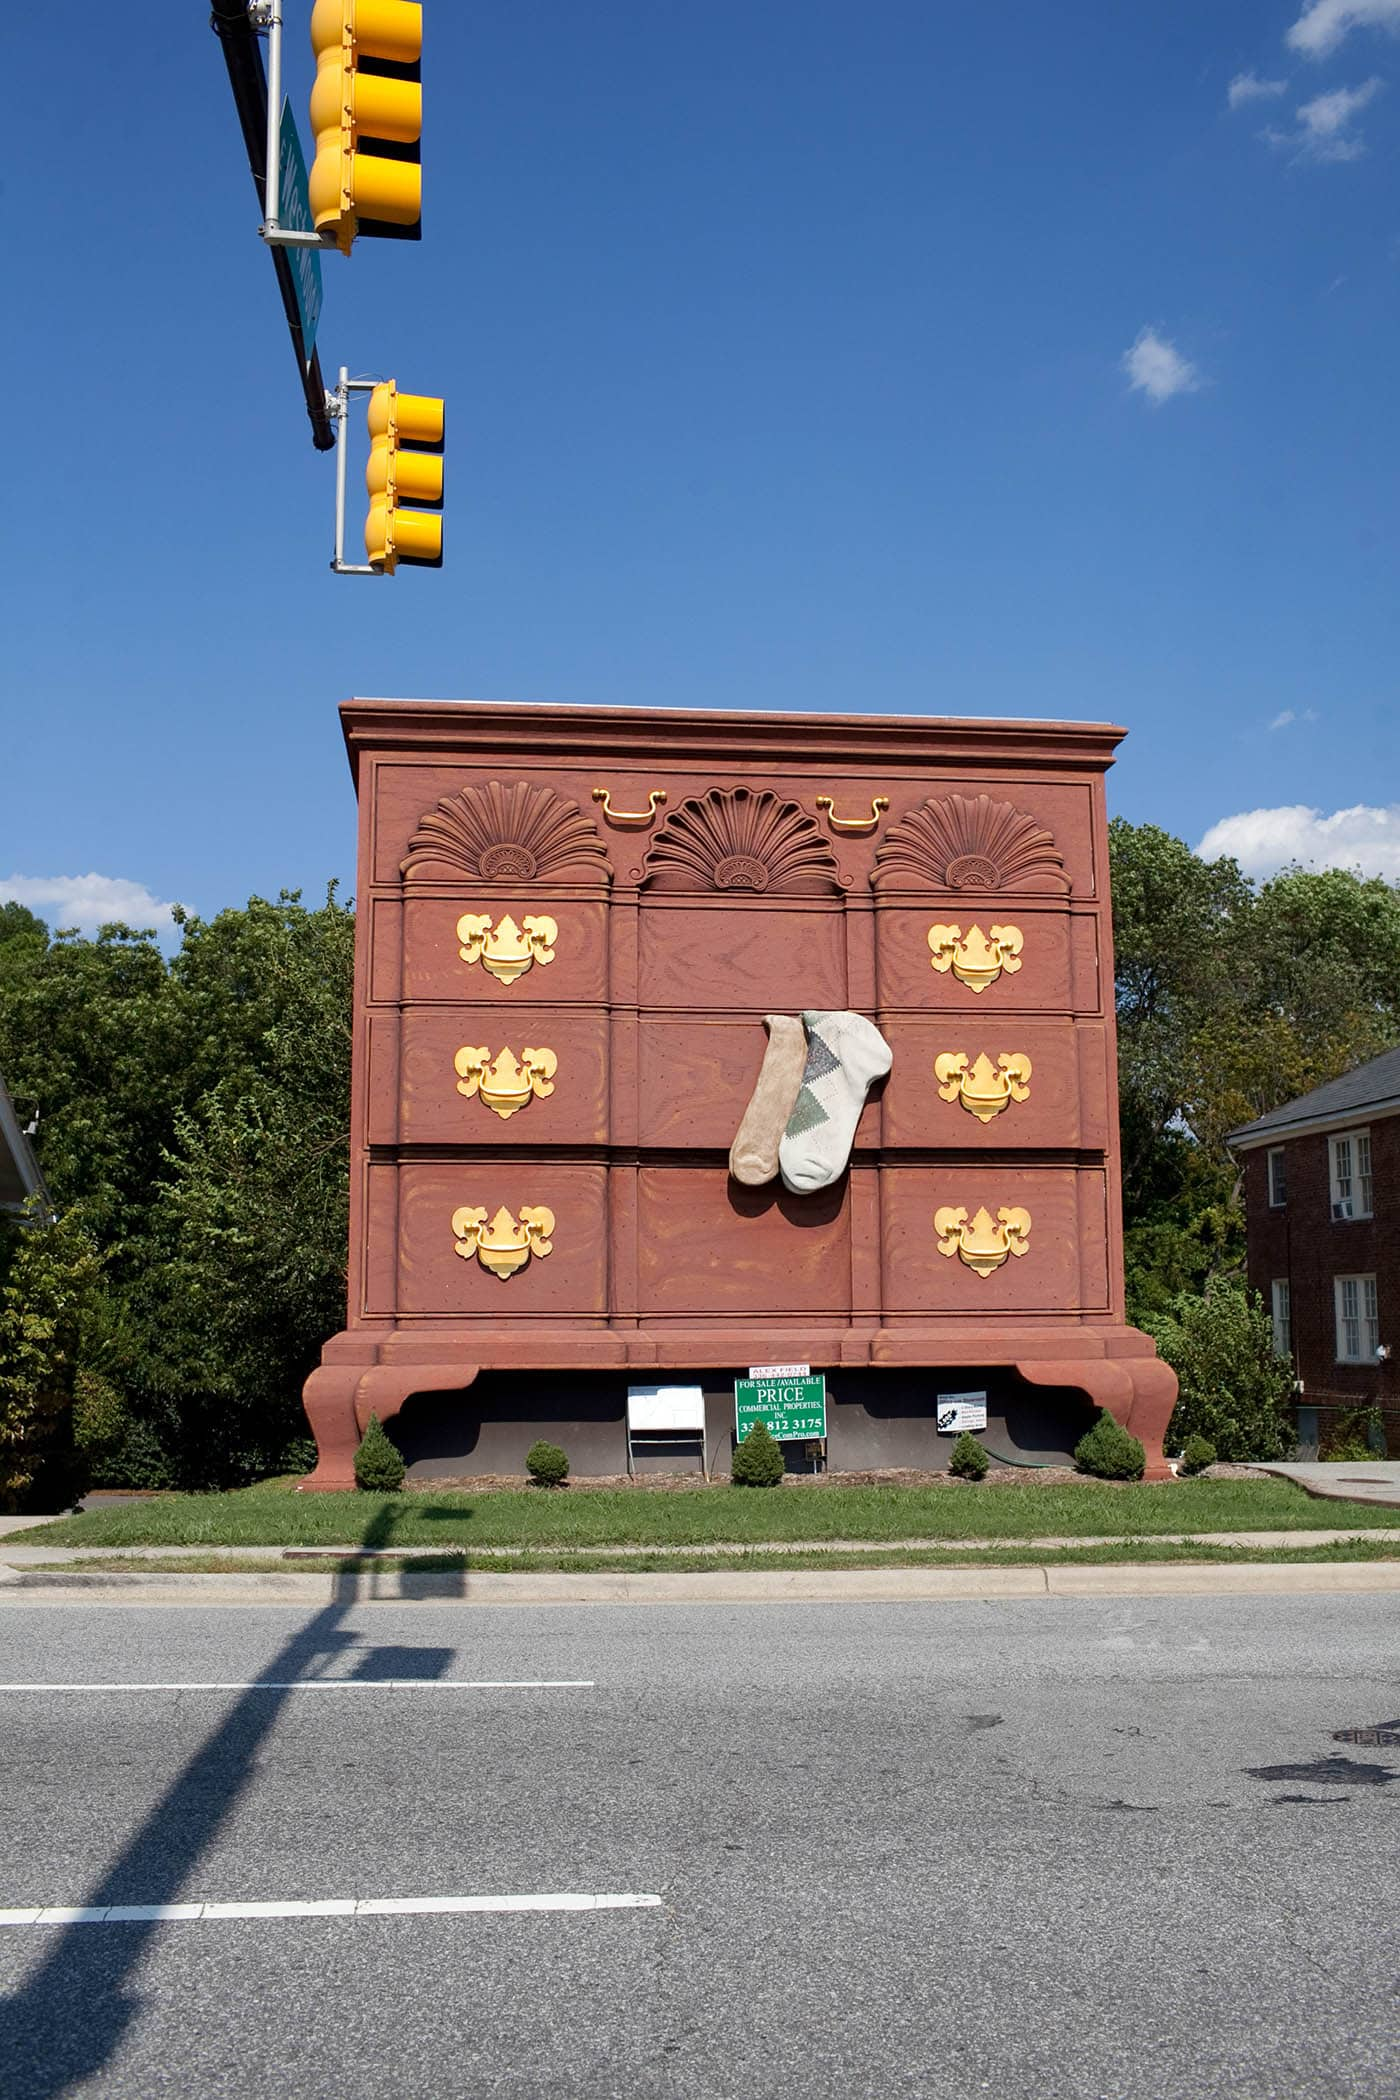 World's Largest Chest of Drawers in High Point, North Carolina